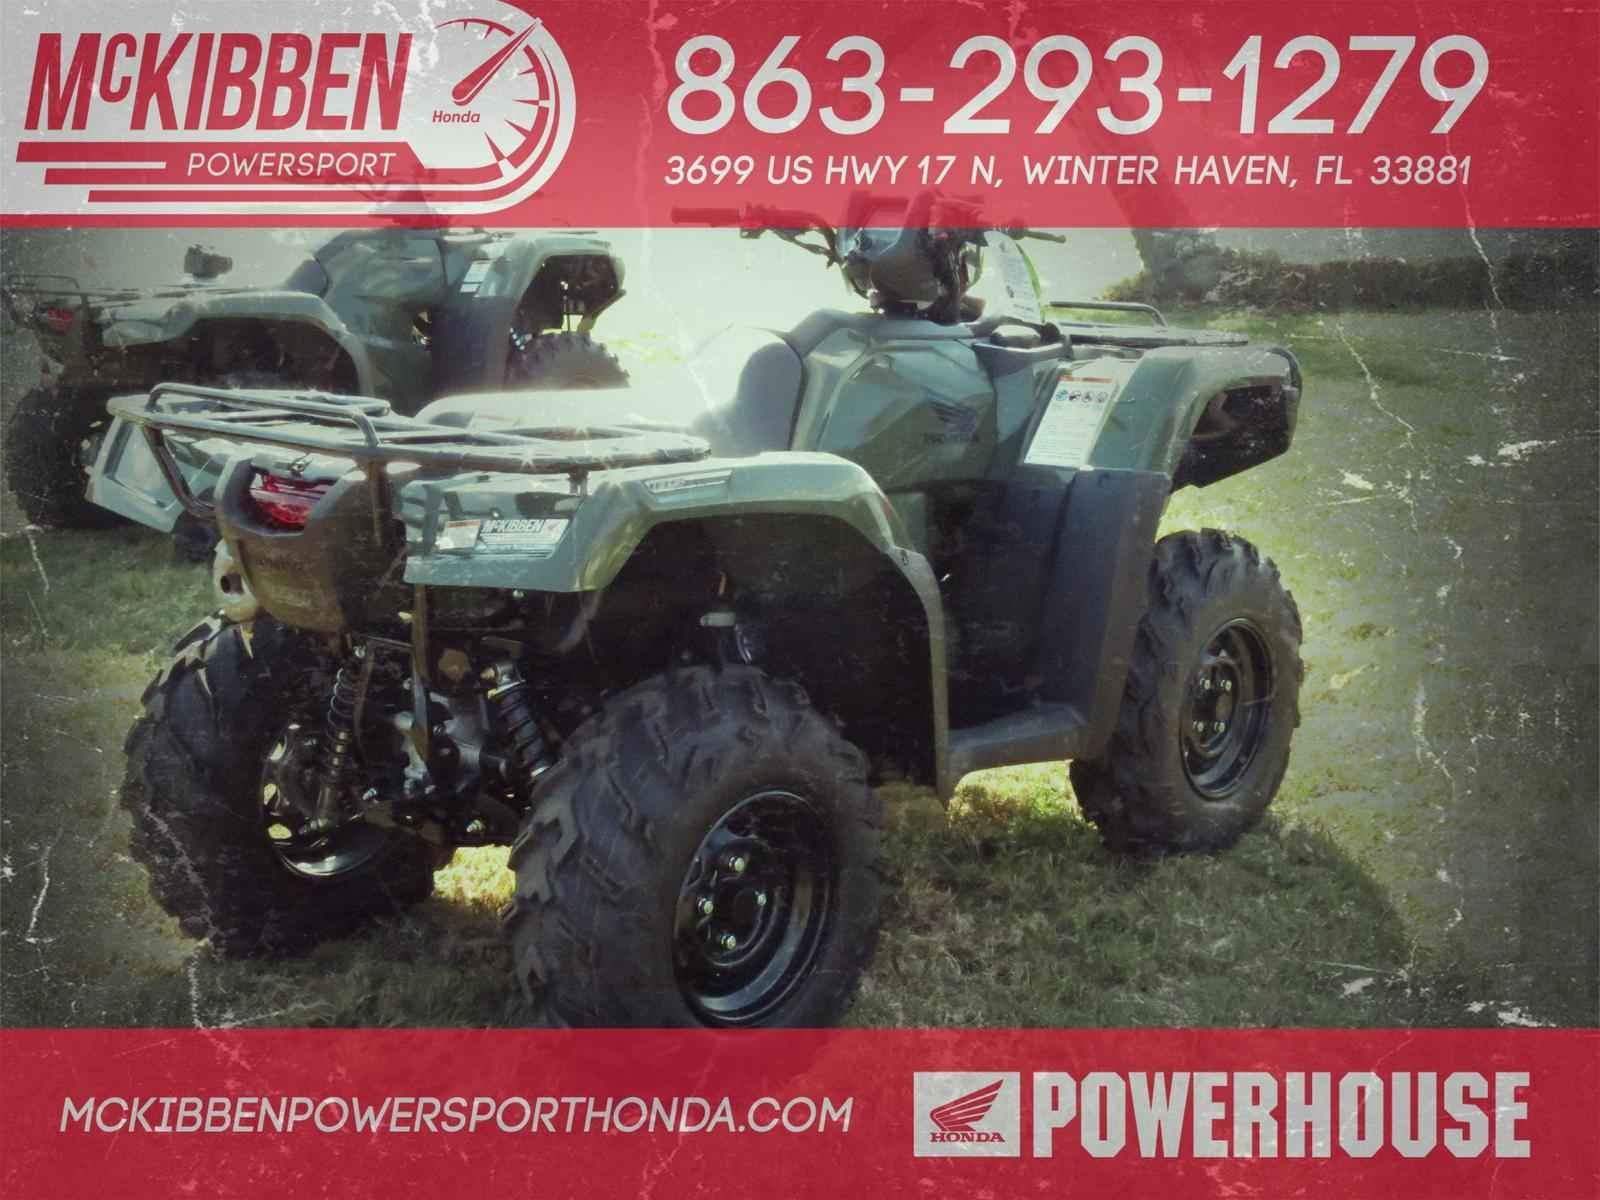 New 2017 Honda FourTrax Foreman Rubicon 4X4 EPS ATVs For Sale In Florida.  2017 HONDA